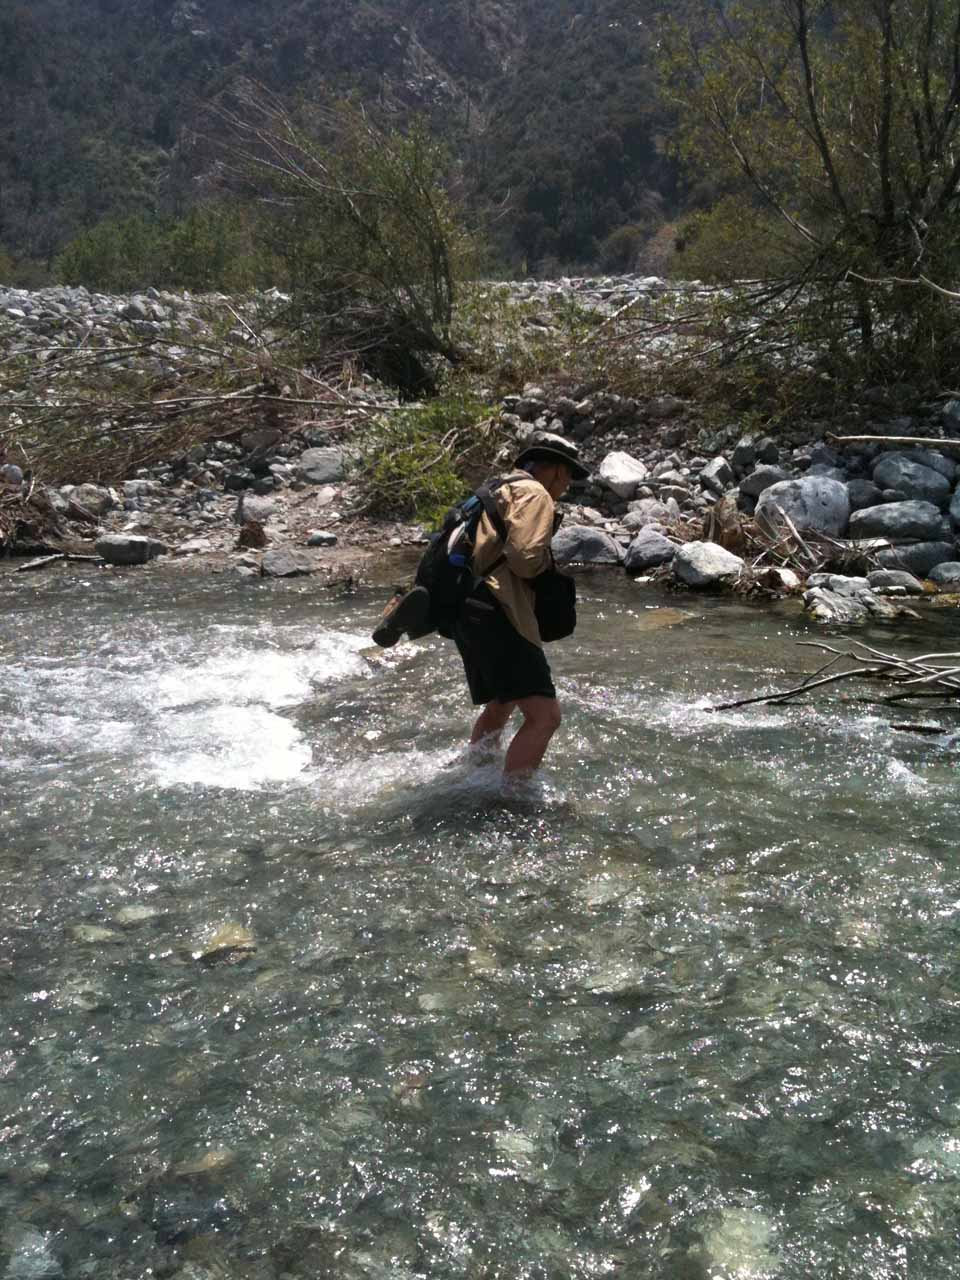 Me crossing Lytle Creek in high flow after having identified this spot as most suitable for a crossing